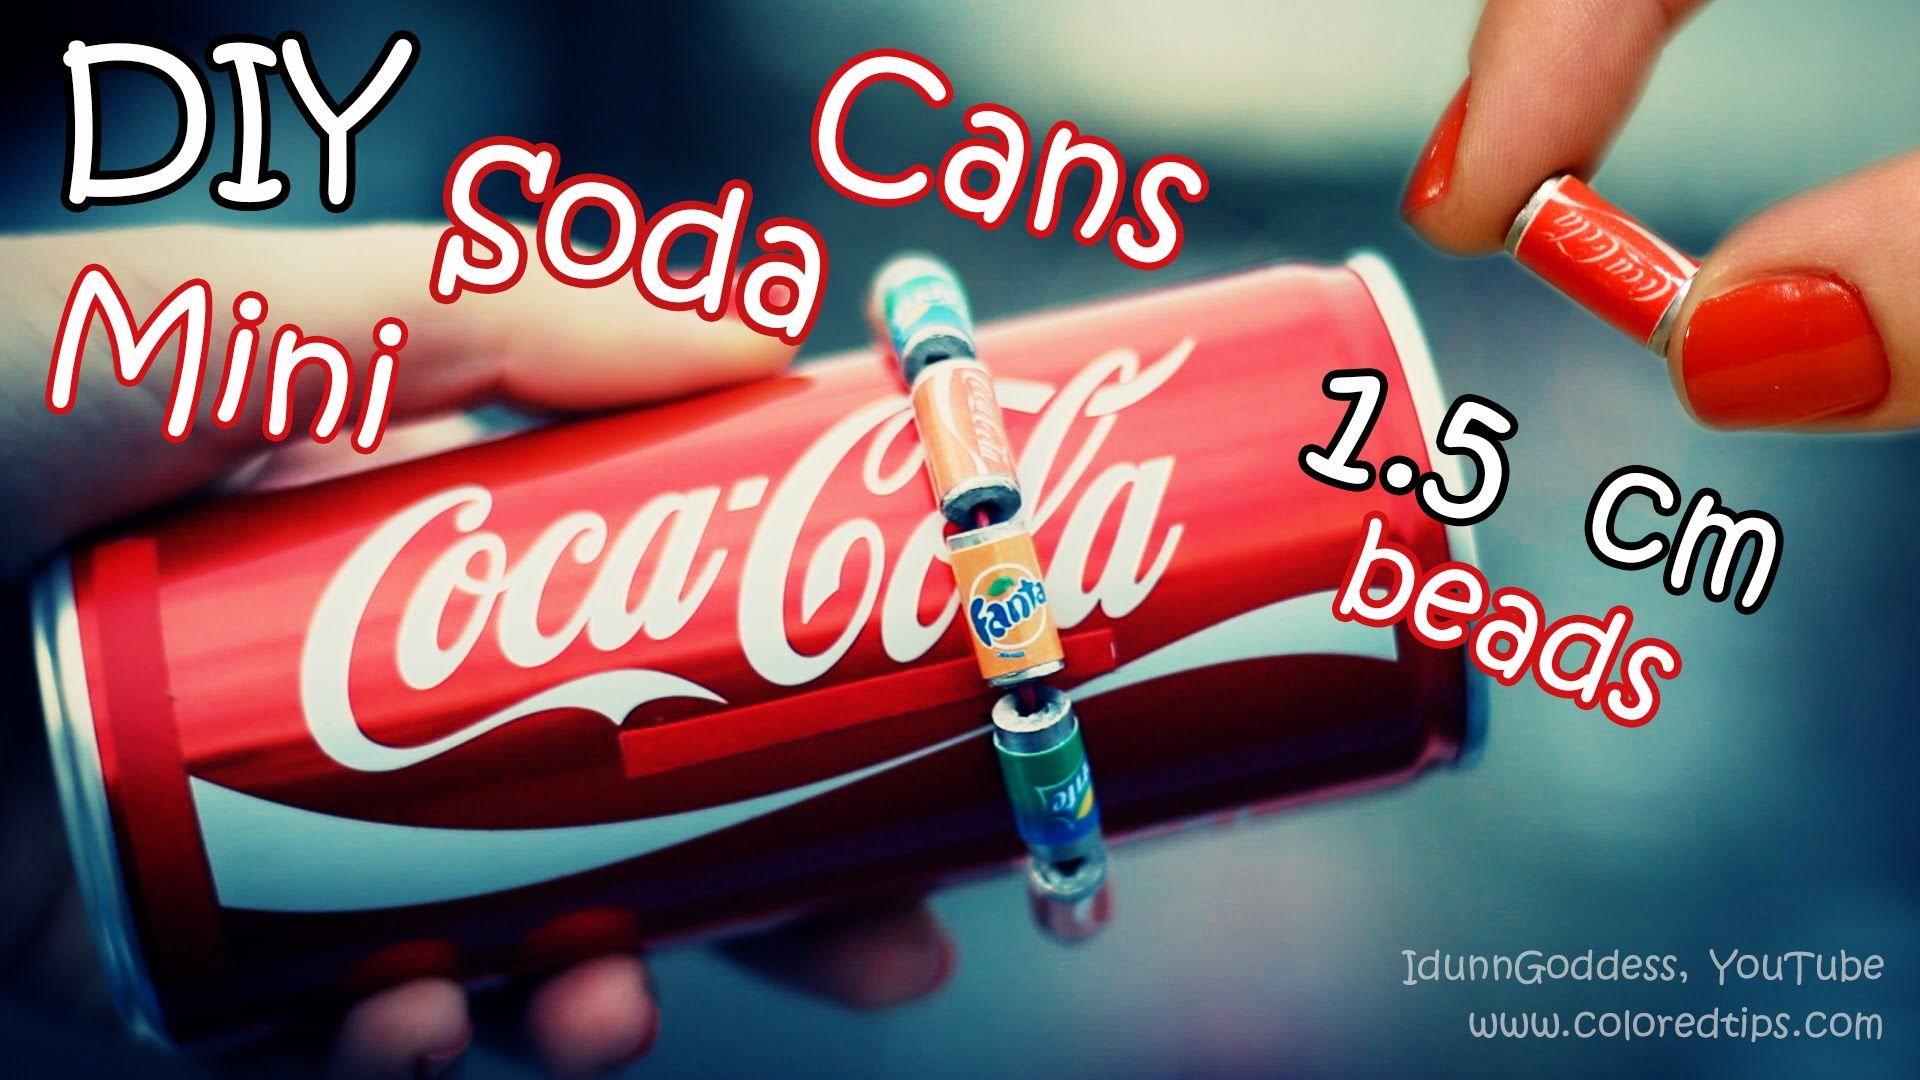 Easy video tutorial of do-it-yourself Tiny Soda Cans Beads made of pencils. You can make a bracelet with these DIY beads, earrings or necklace – whatever! An...